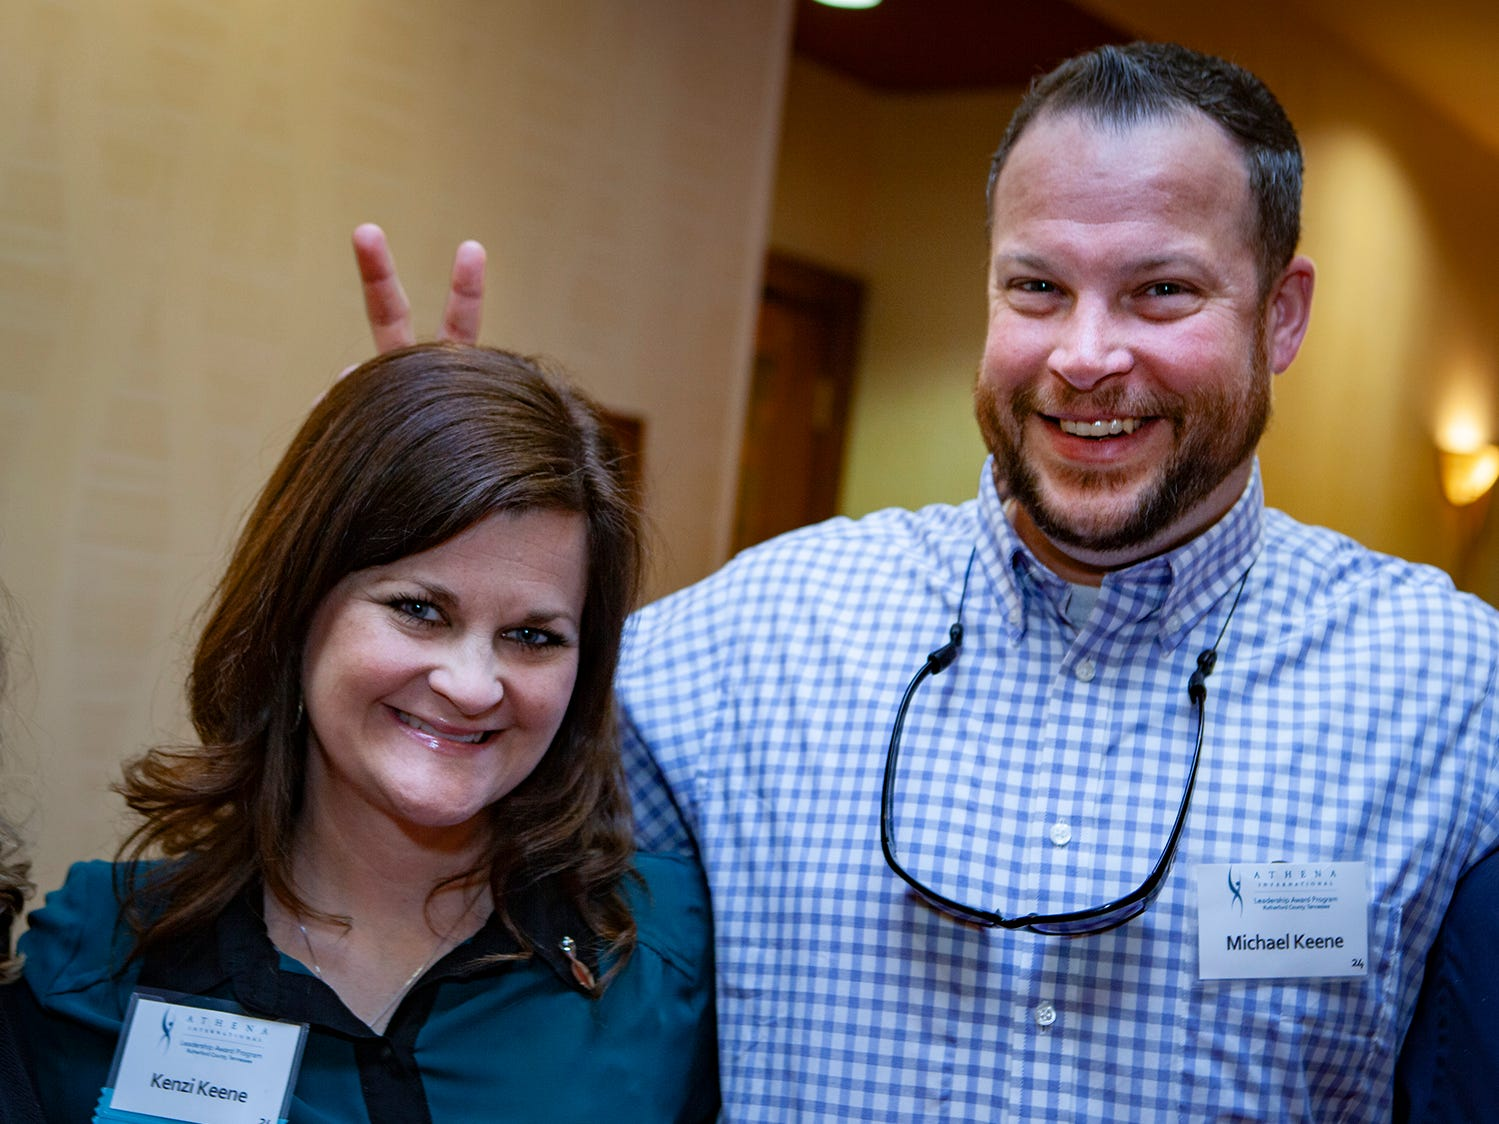 Michael Keene a bit of fun with wife  Kenzi Keene, a nominee at the annual ATHENA Leadership Awards, hosted by Rutherford Cable Friday, April 12, 2019 at Embassy Suites Murfreesboro.